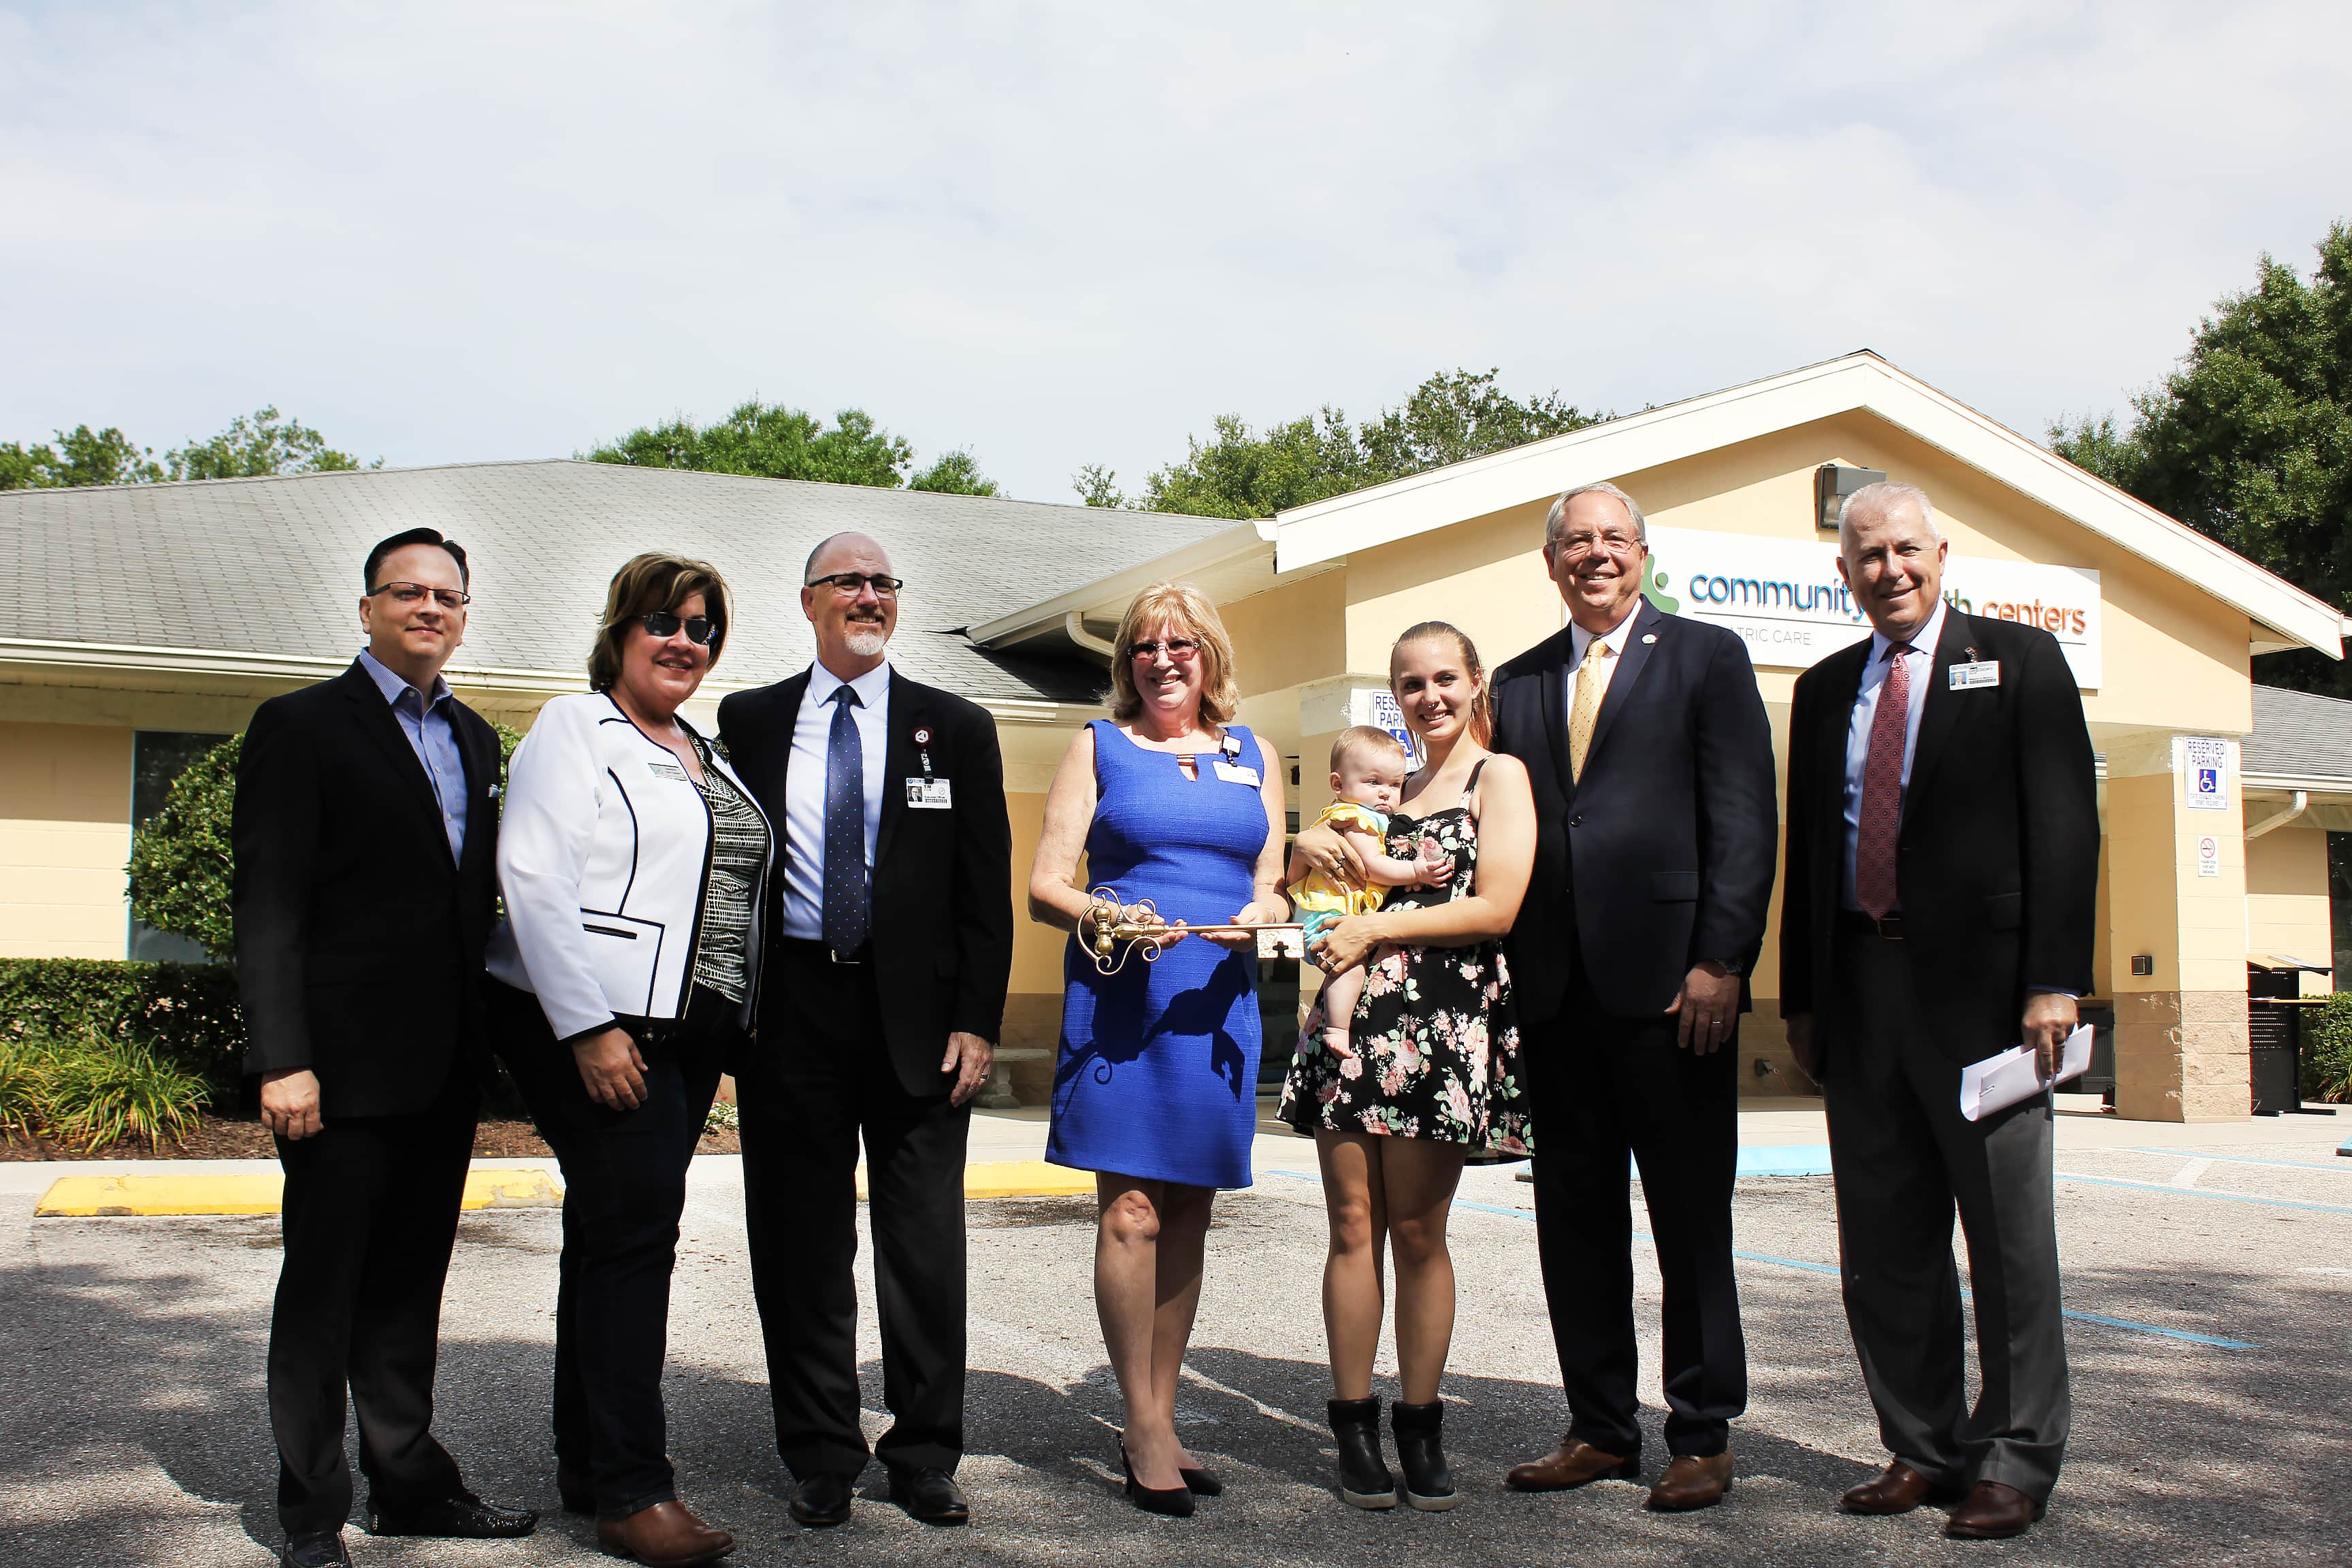 florida hospital gifts chc a building